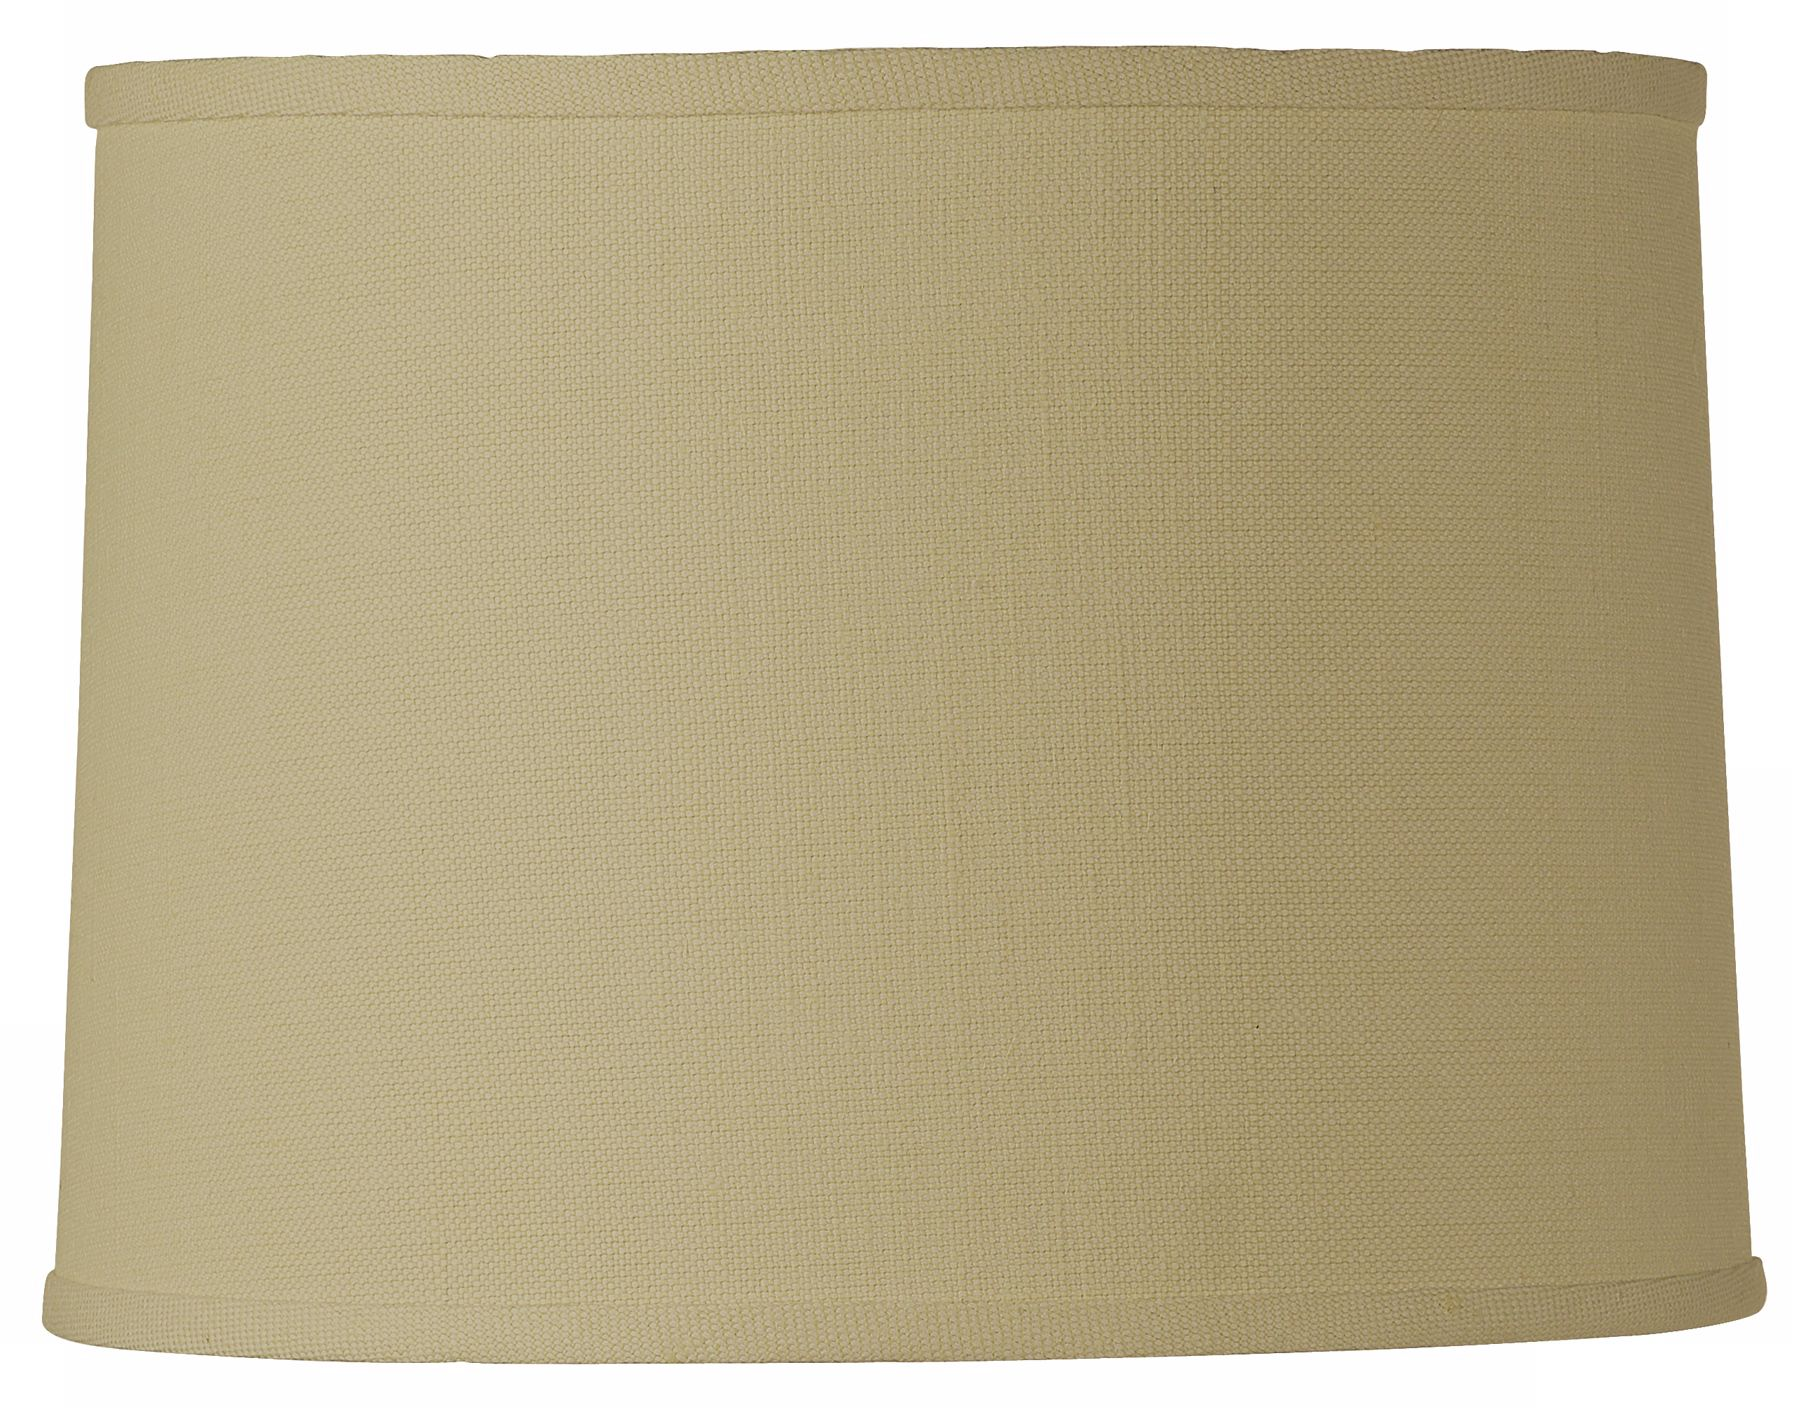 Hardback Drum Cream Linen Lamp Shade 15x16x11 (Spider)